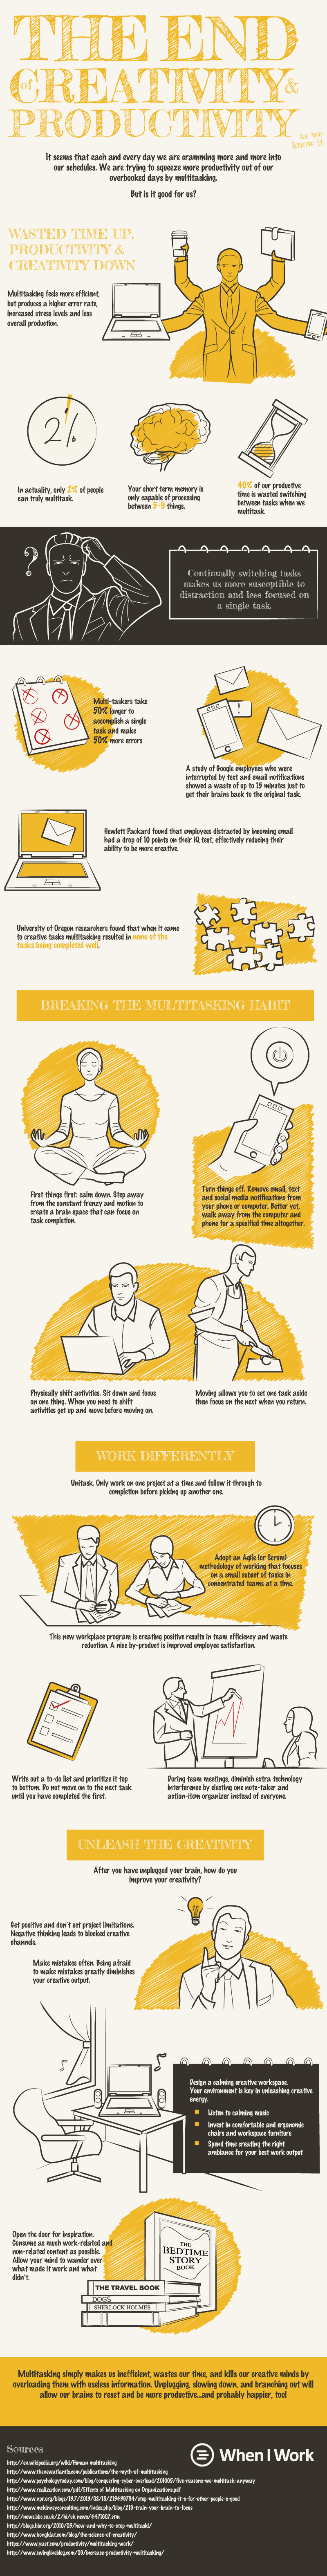 productivity-as-we-know-it-infographic